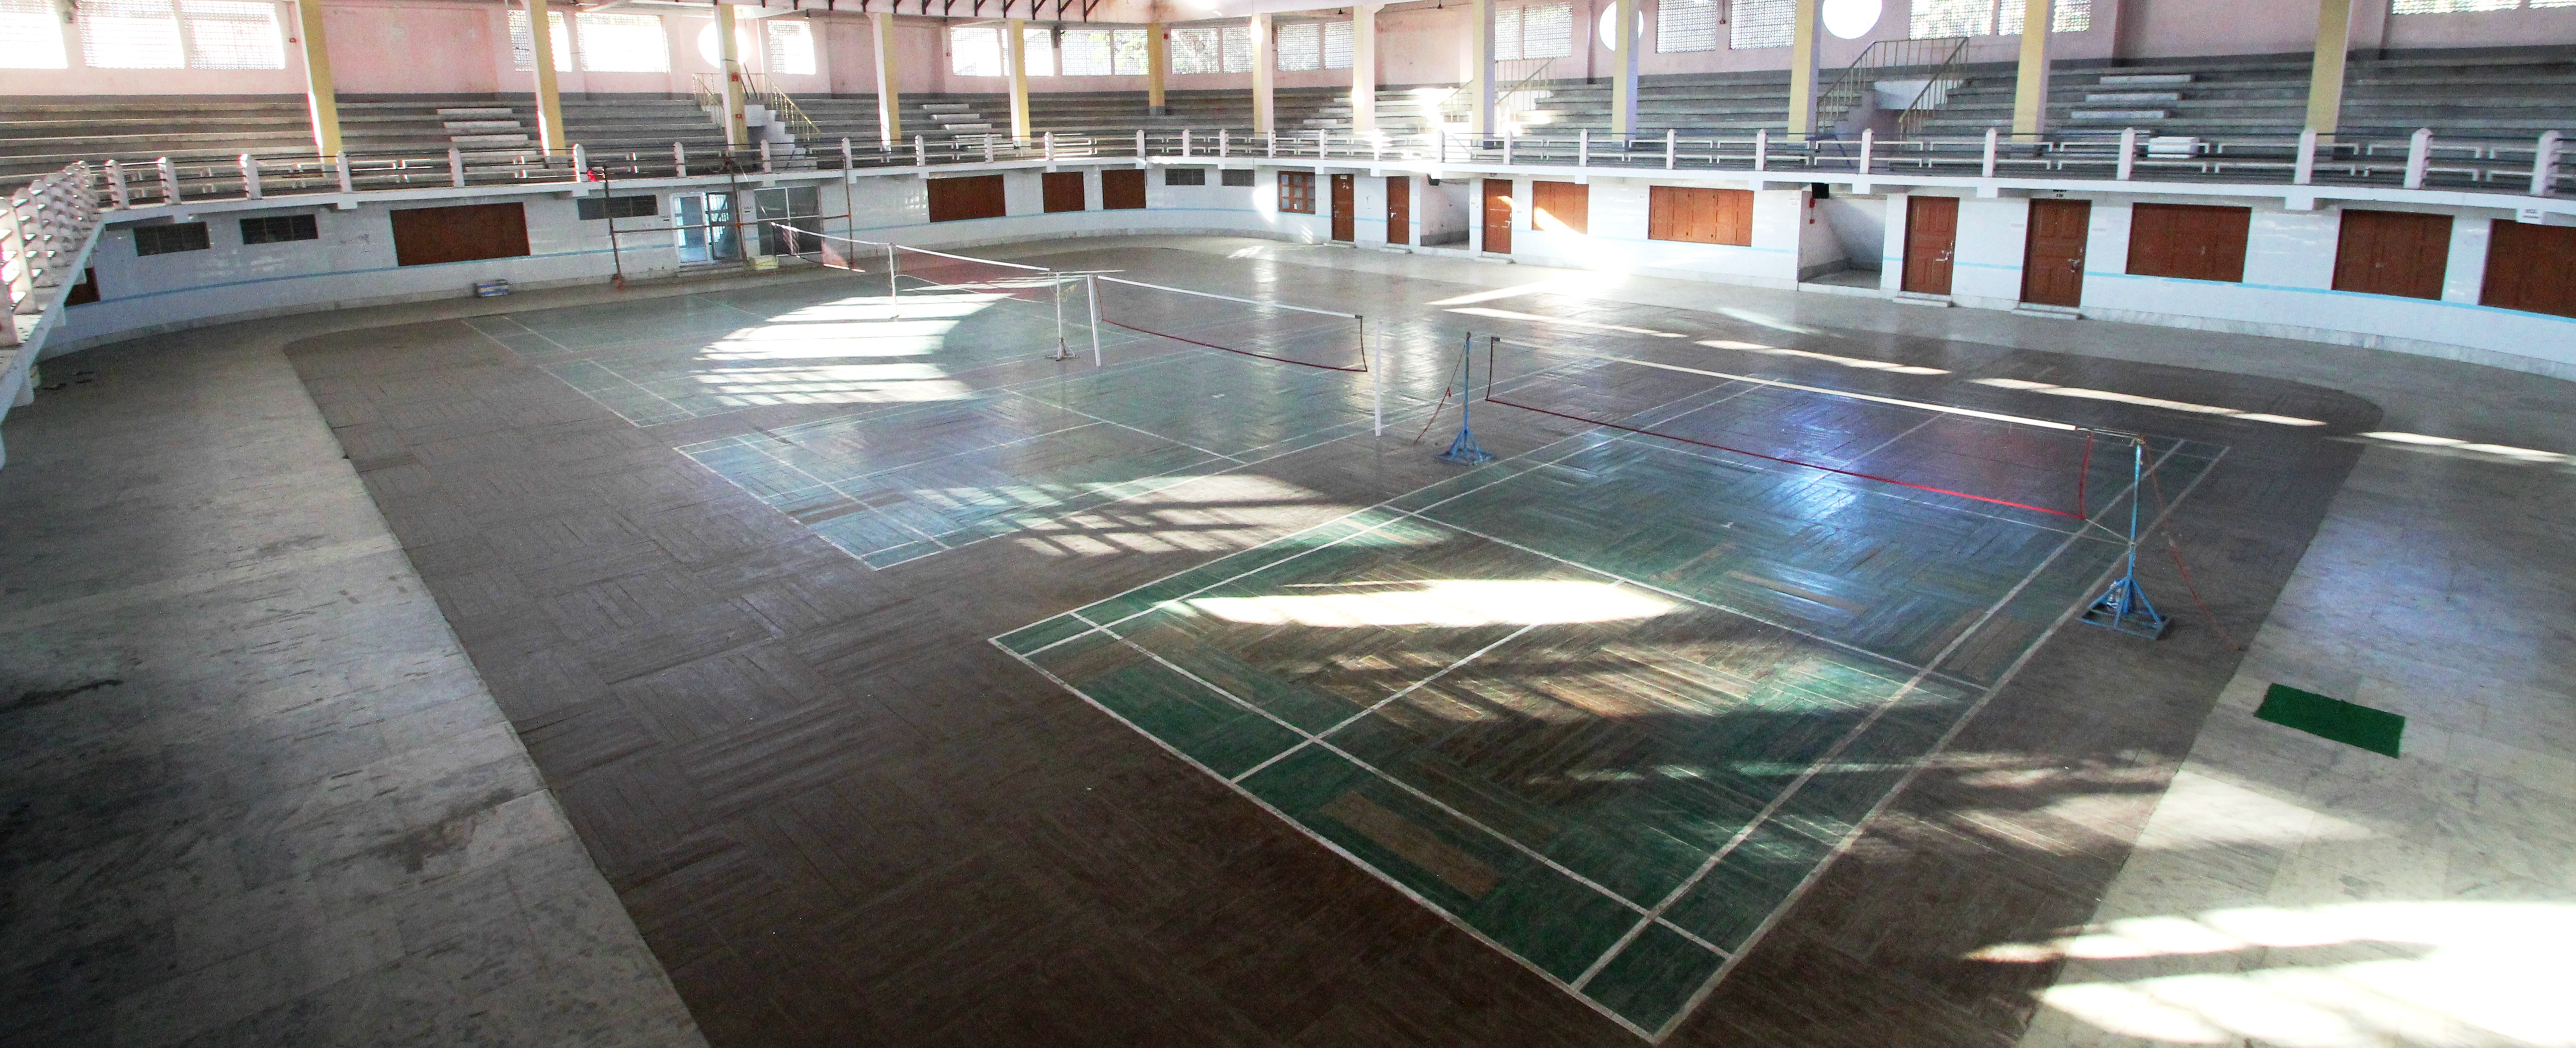 Alipurduar Indoor Stadium